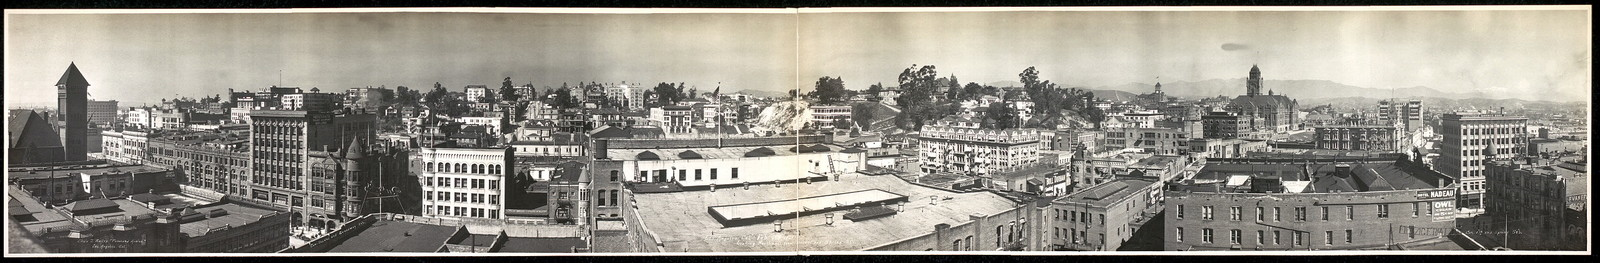 Los Angeles, Cal., Feb. 23rd, 1909, looking northwest from Second and Spring Sts.